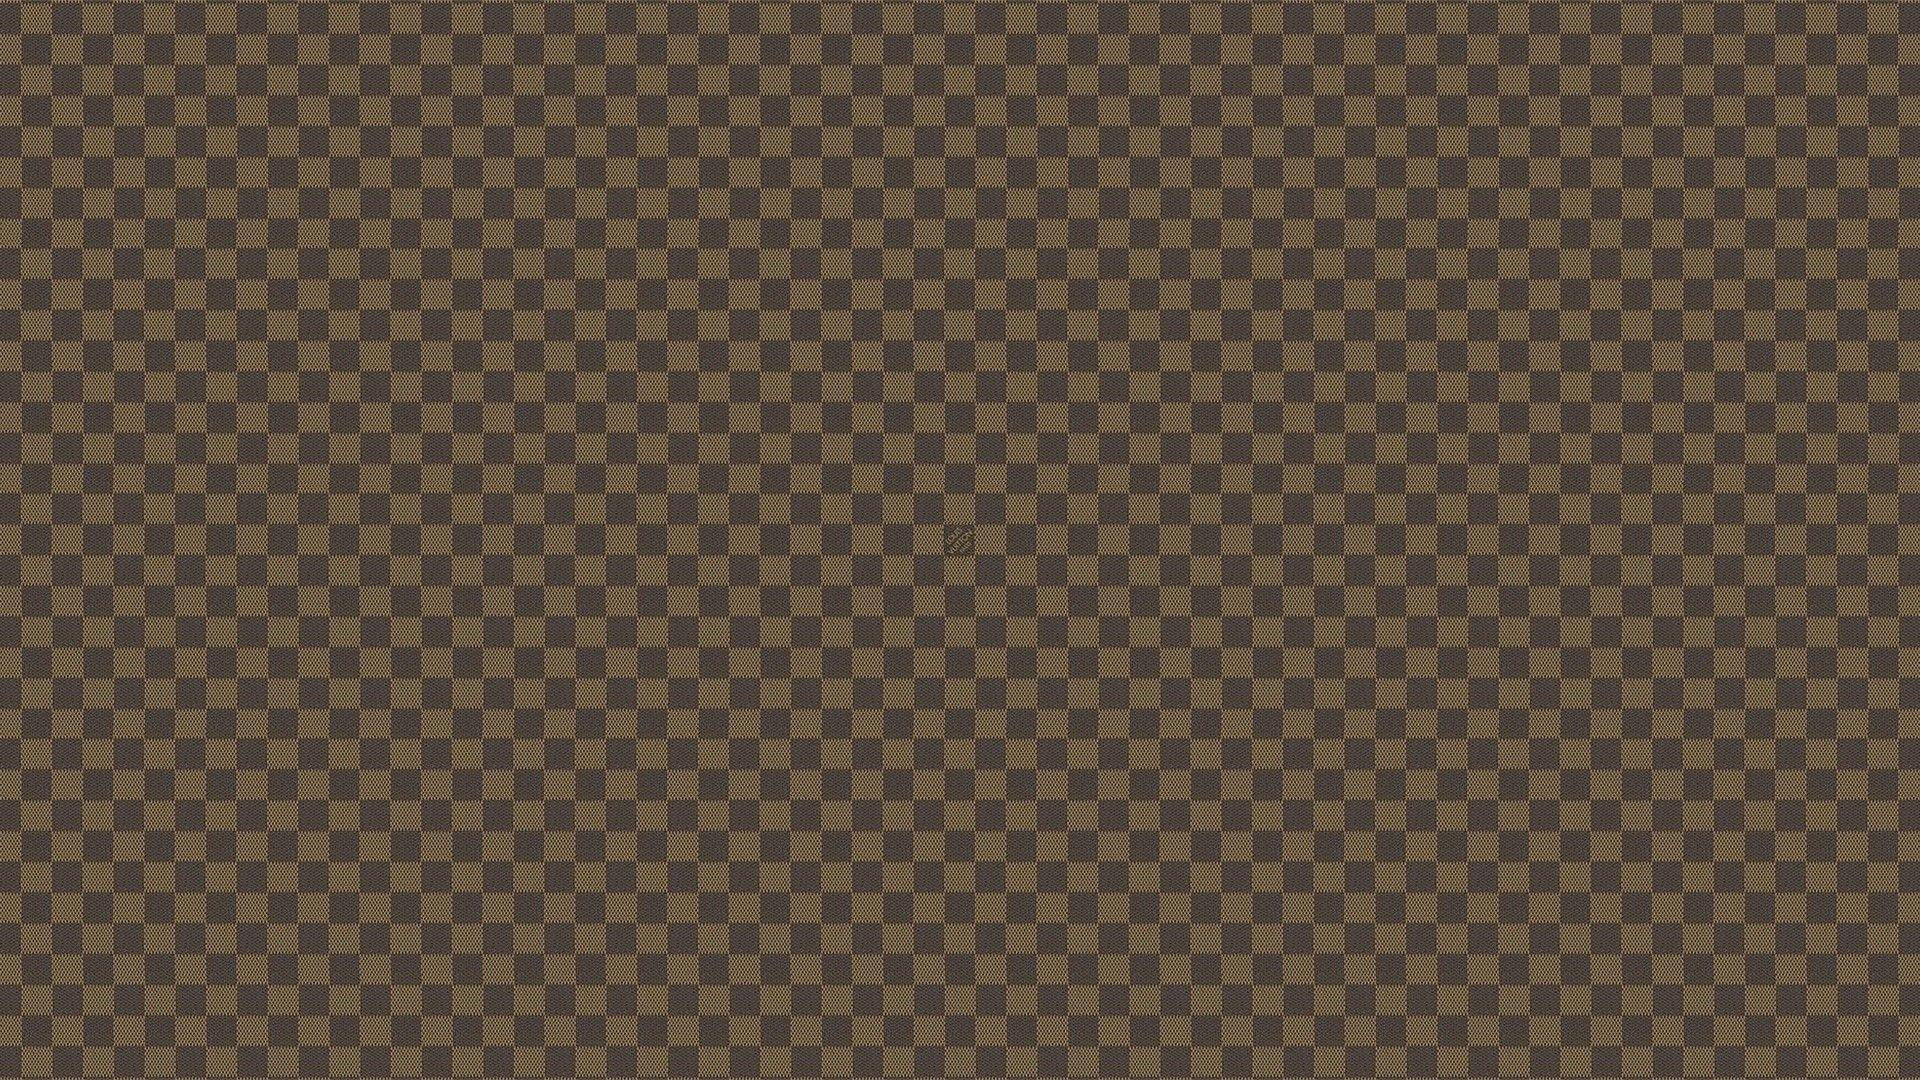 Louis vuitton backgrounds wallpaper cave interior design louis vuitton background wallpaper panda louis voltagebd Choice Image